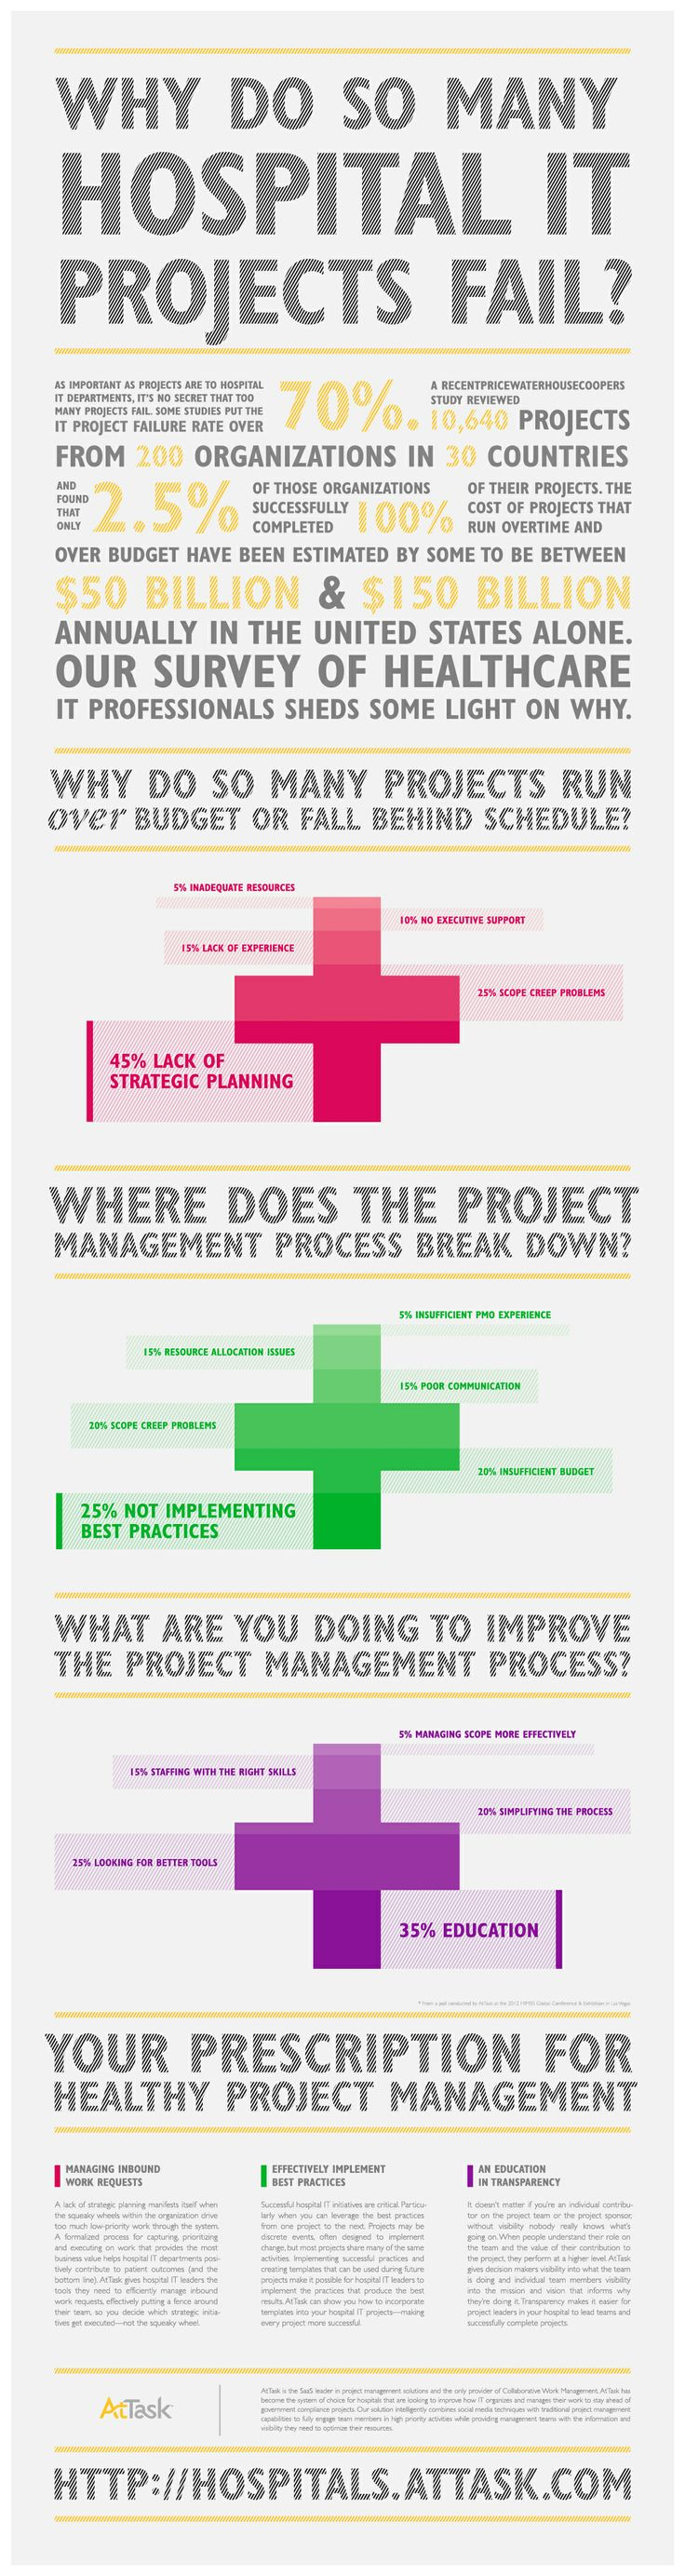 Why do so many hospital IT projects fails? - AtTask Heathcare Infographic